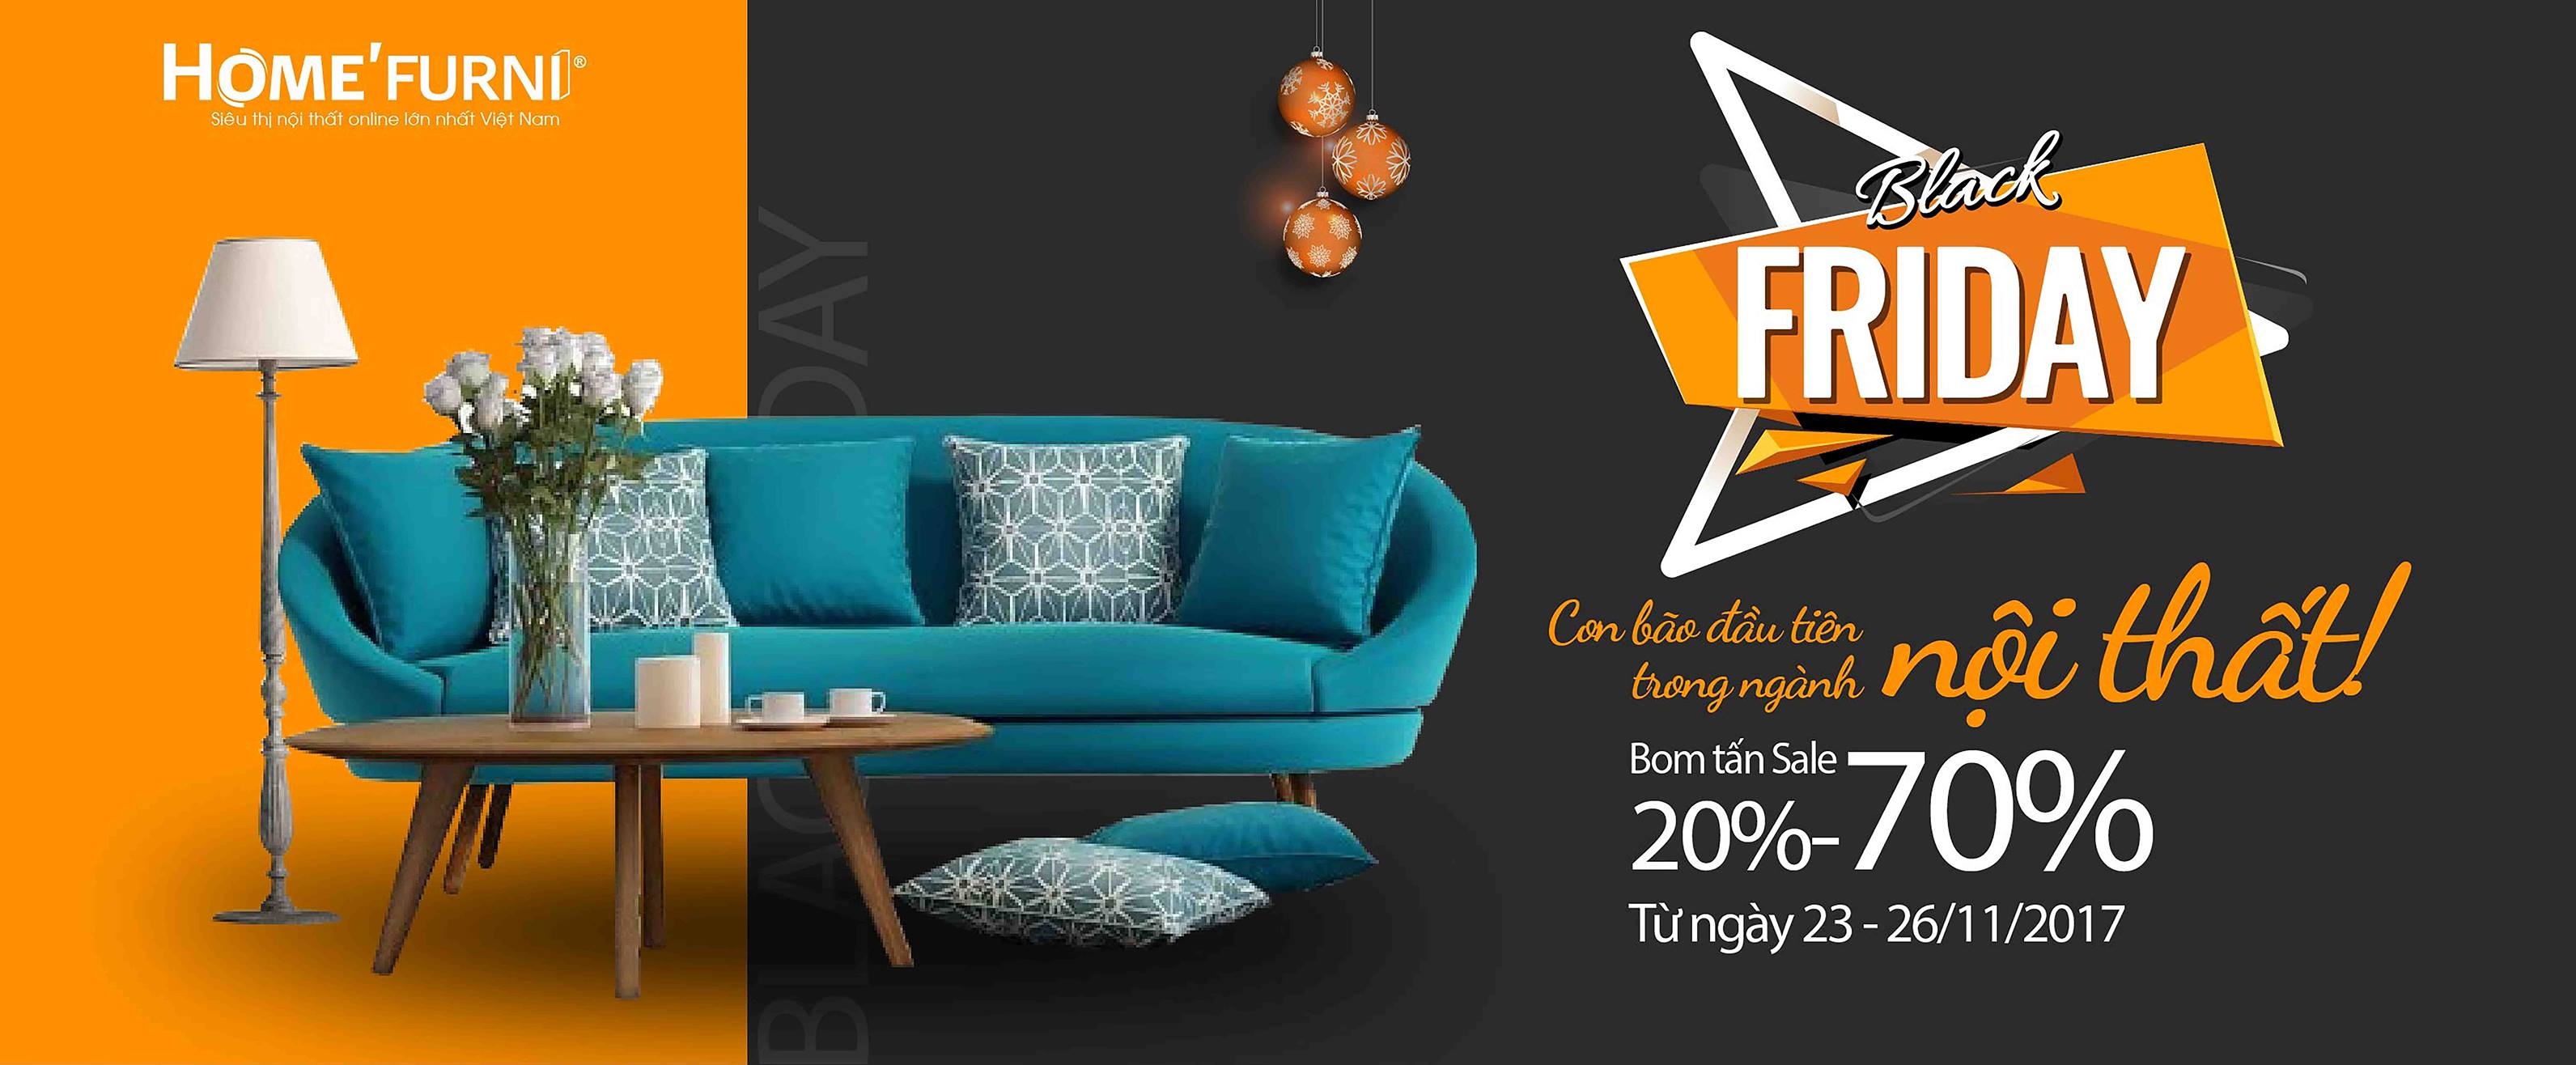 BLACK FRIDAY 23-26.11.2017 Vifahome